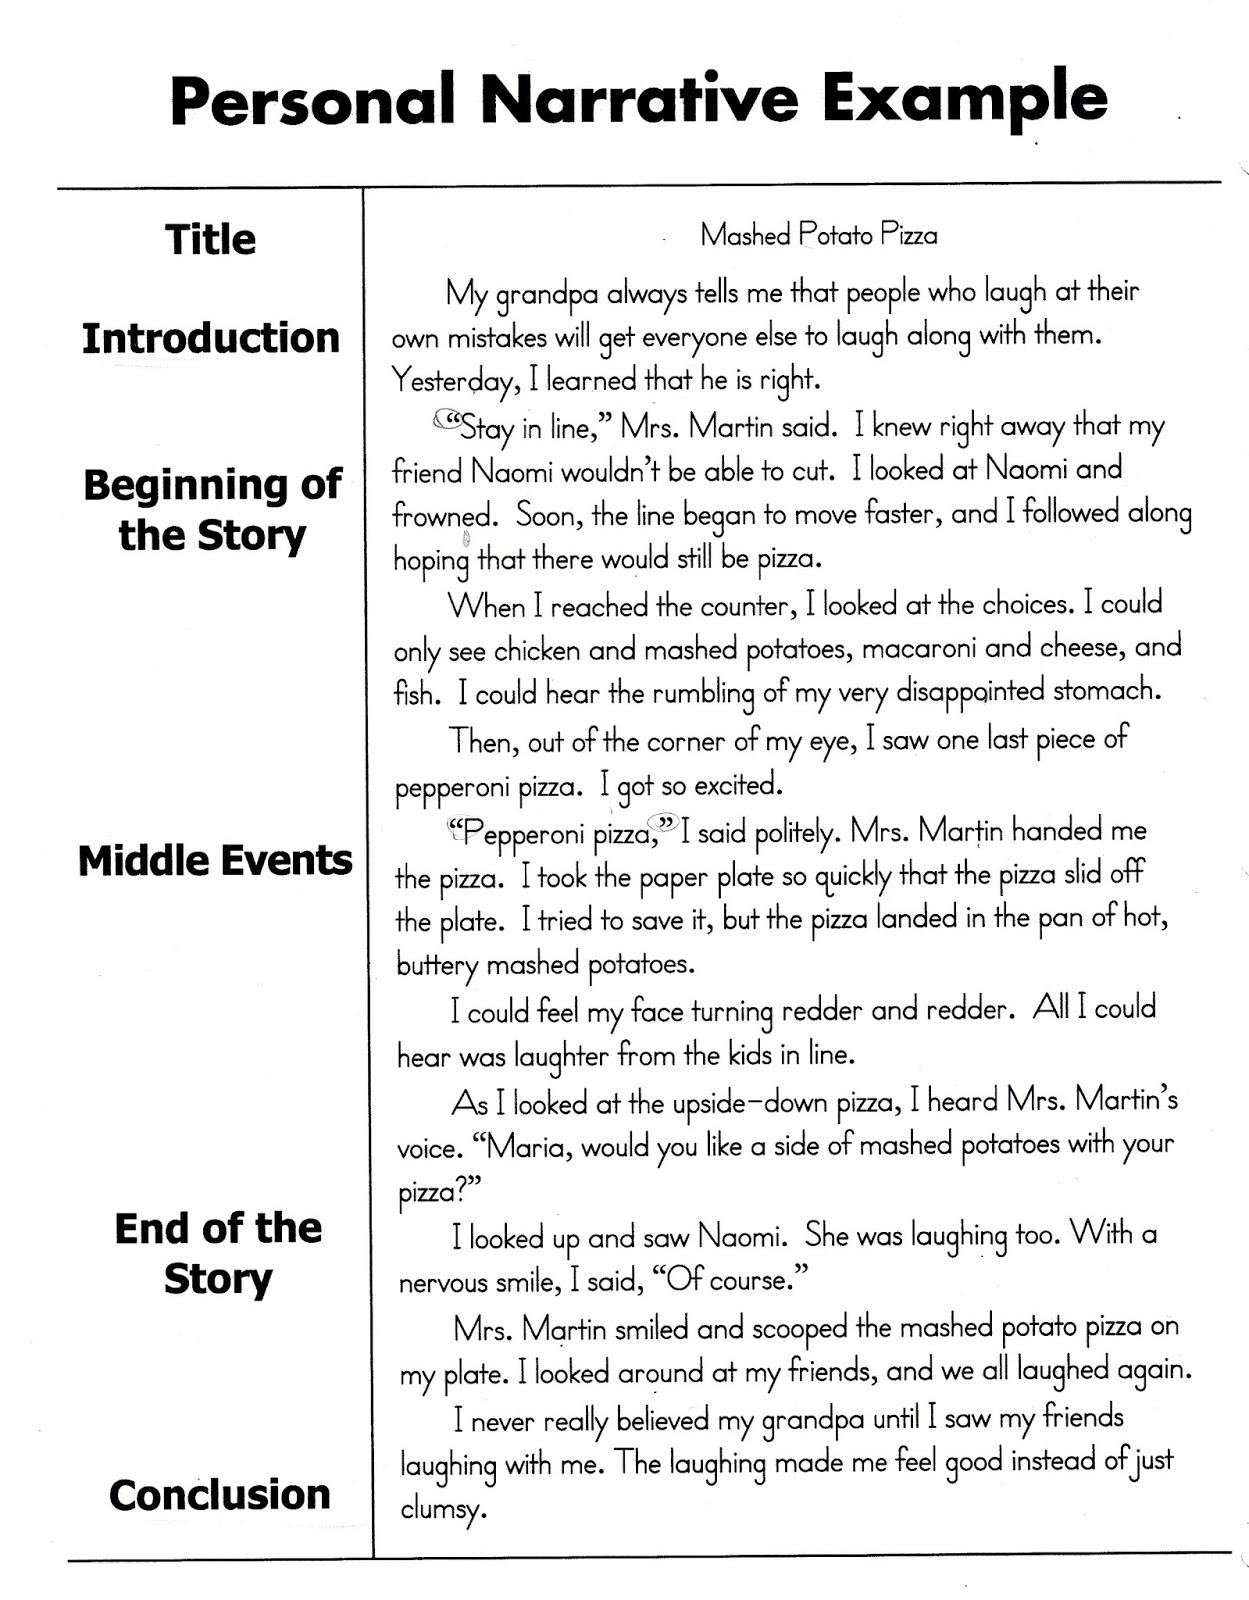 Narrative essay example